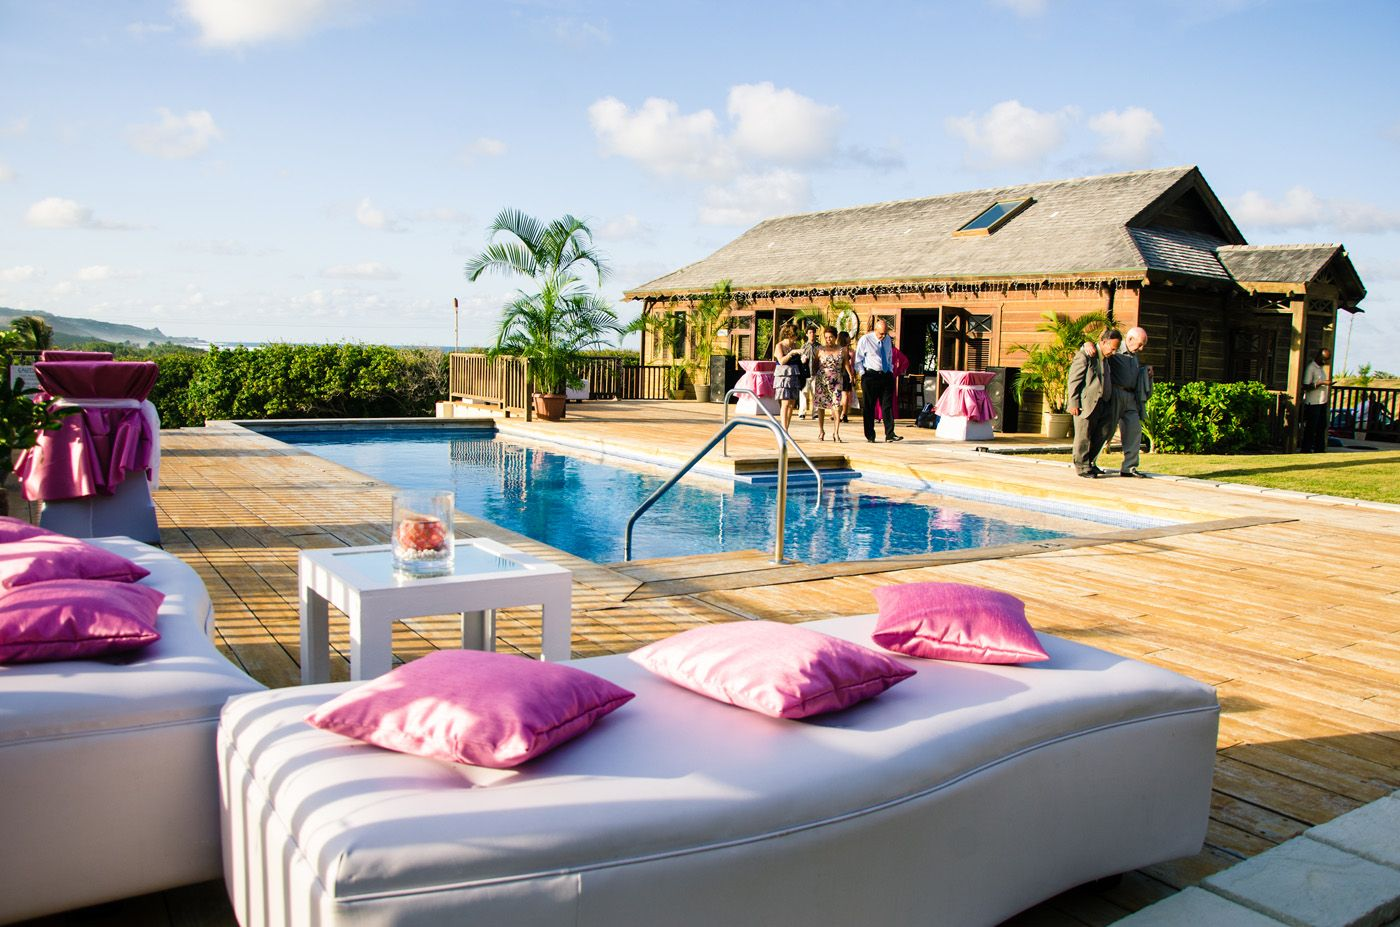 Emma Corrie Destination Wedding At Santosha Barbados With Outdoor Pool Pink And White Lounge